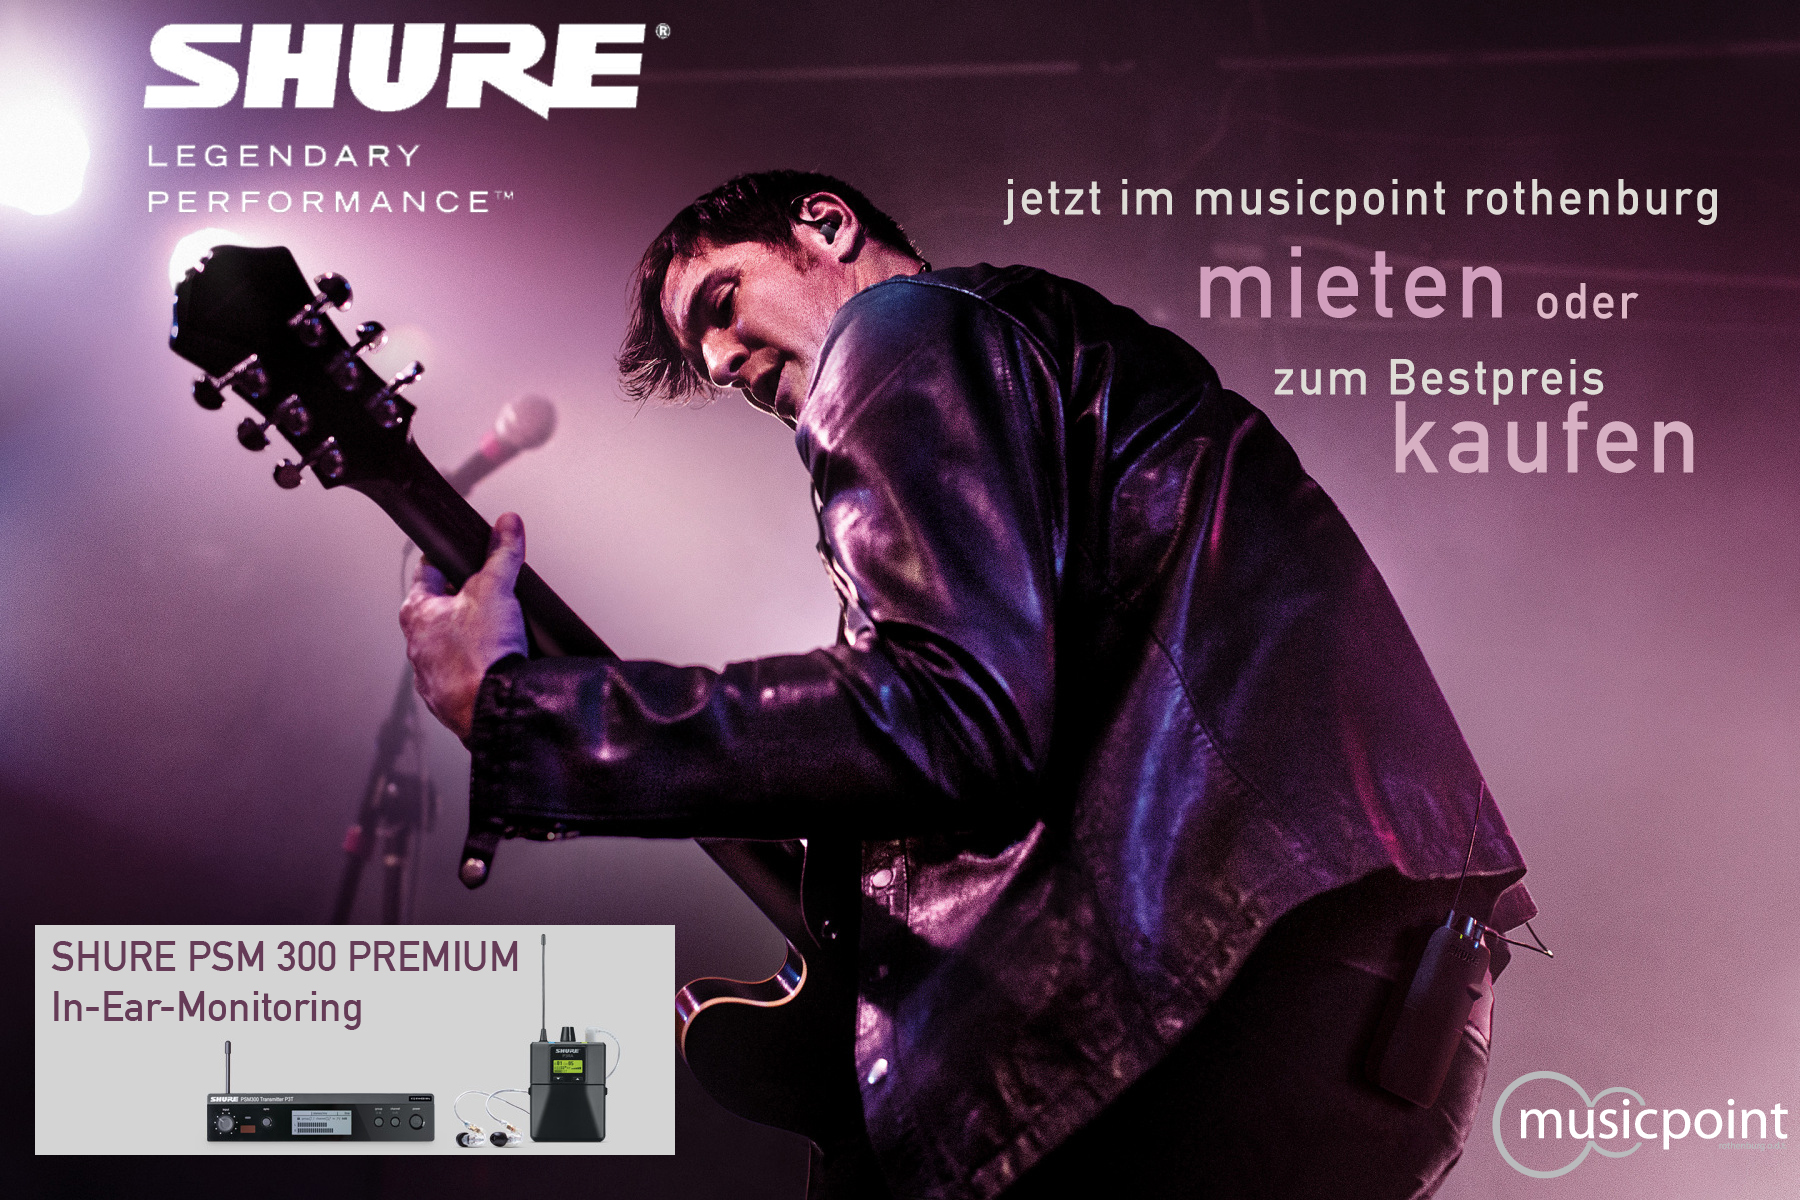 Shure PSM 300 Premium In-Ear-Monitoring